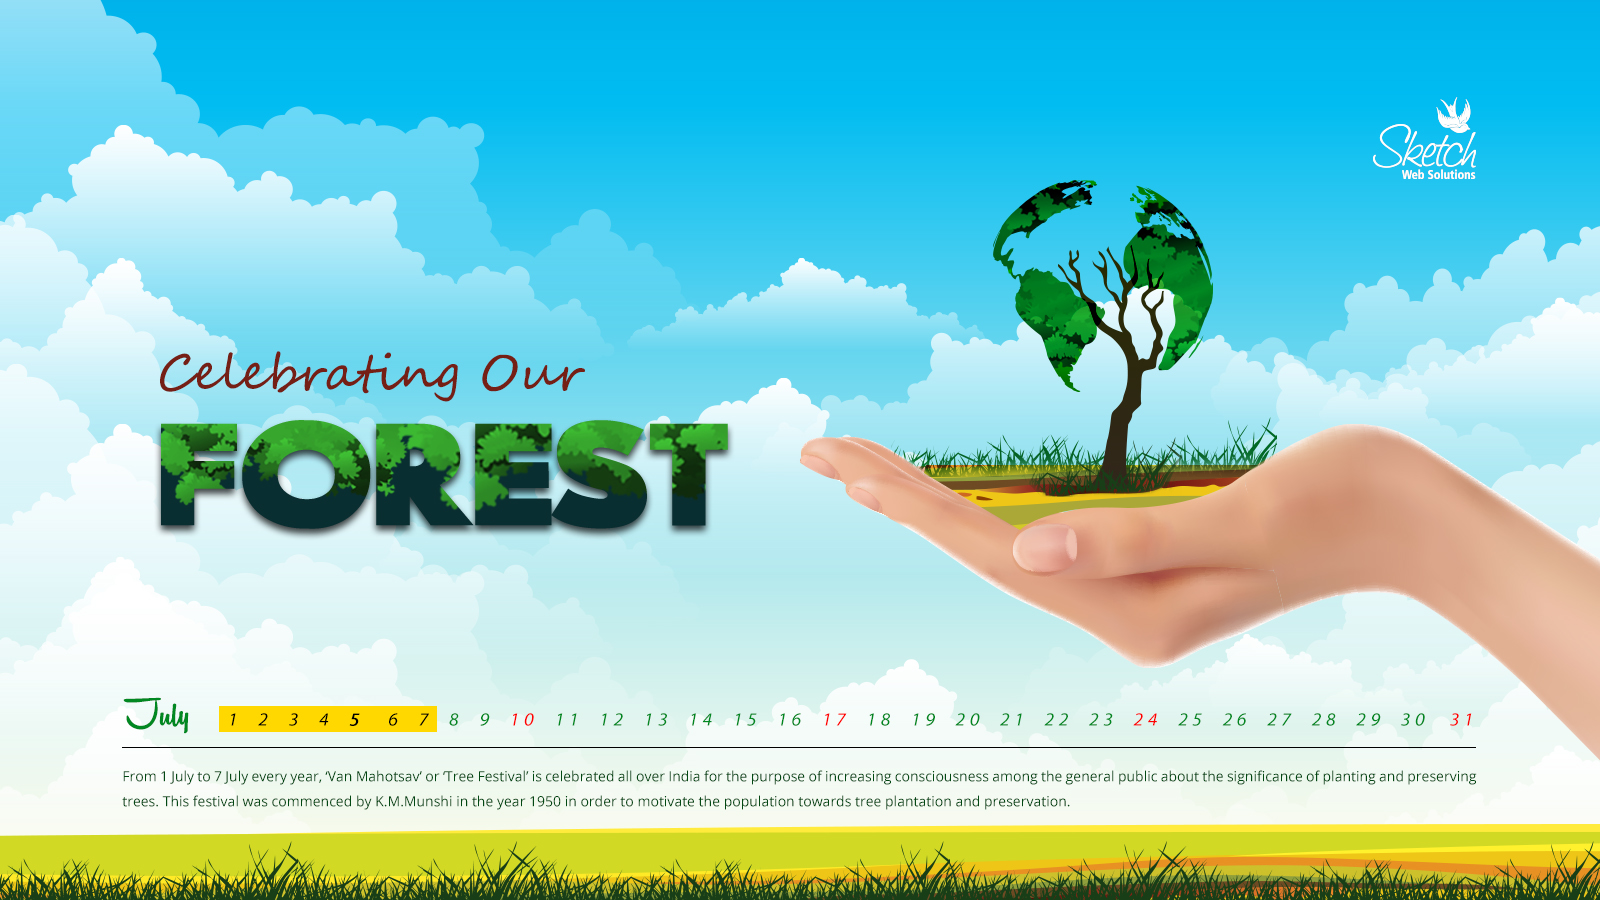 Celebrating Our Forests